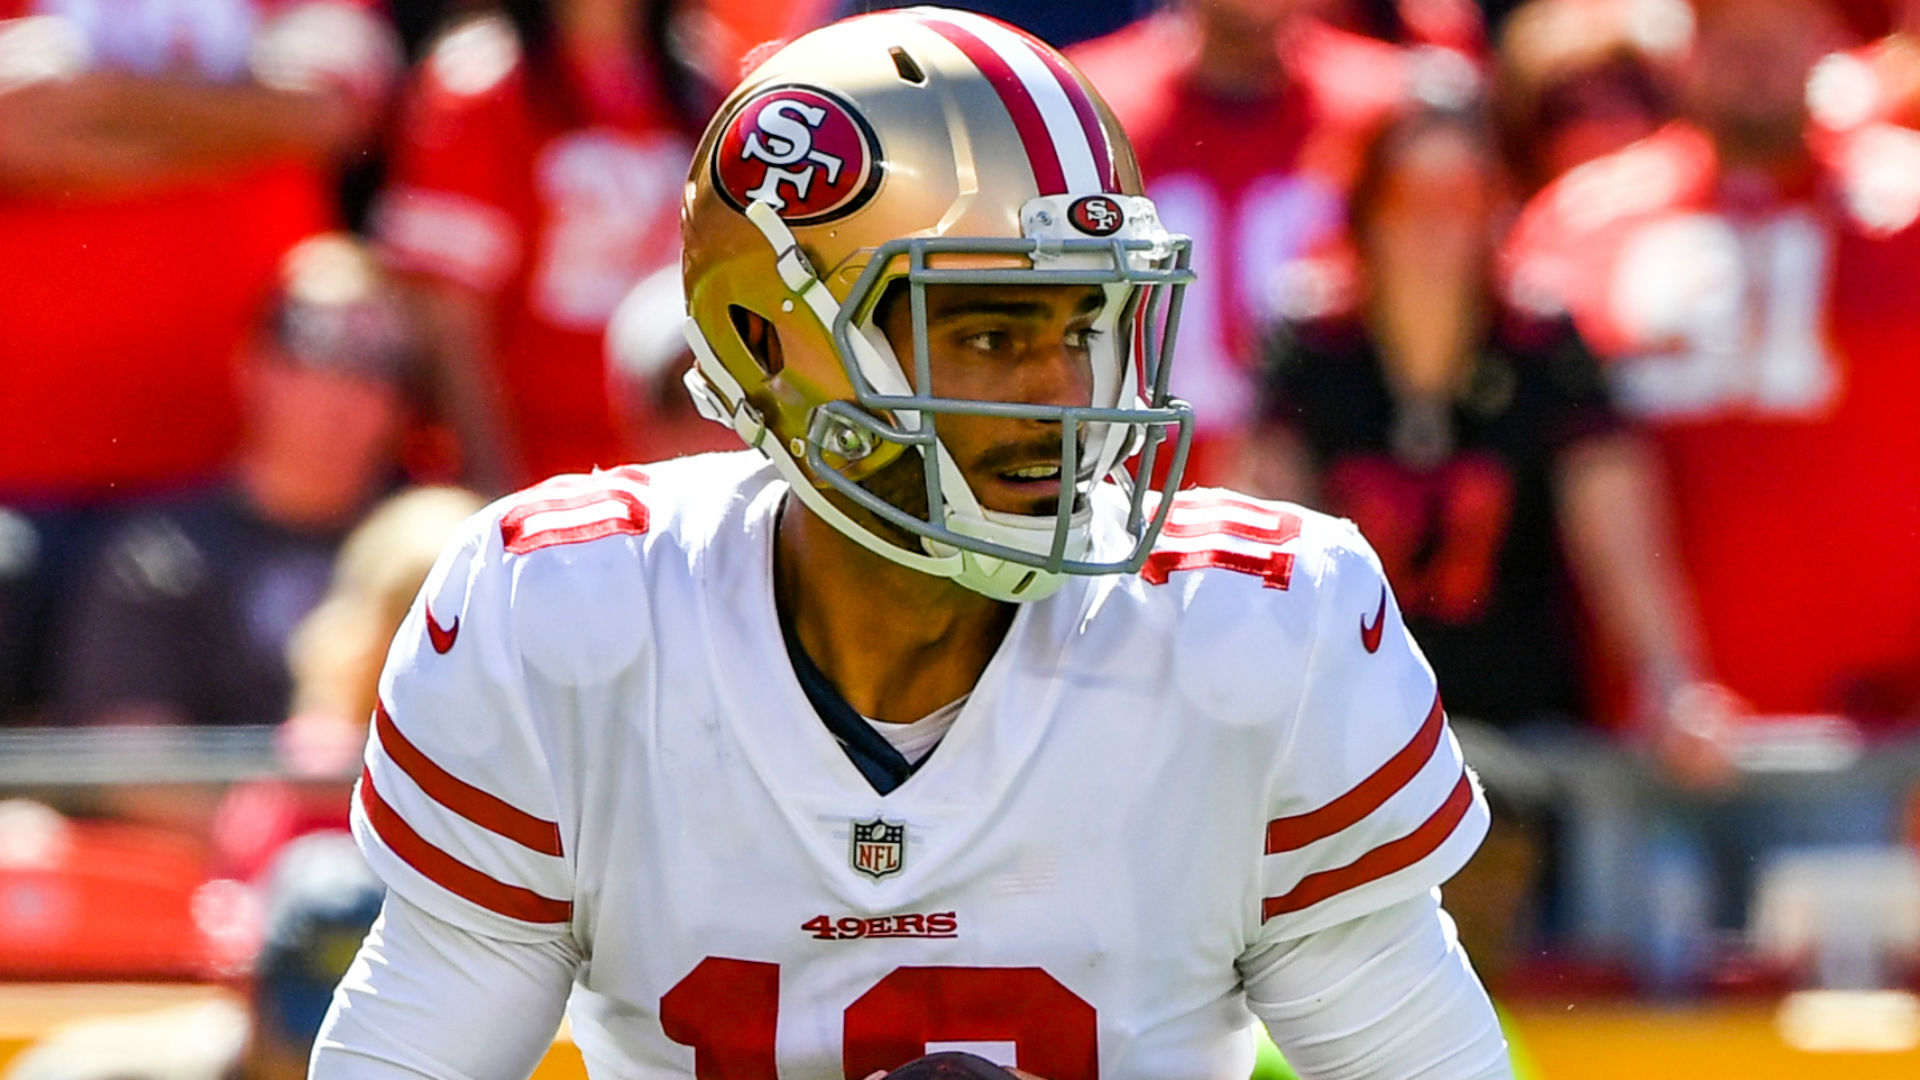 Jimmy Garoppolo threw five consecutive interceptions in a San Francisco 49ers practice session midweek.